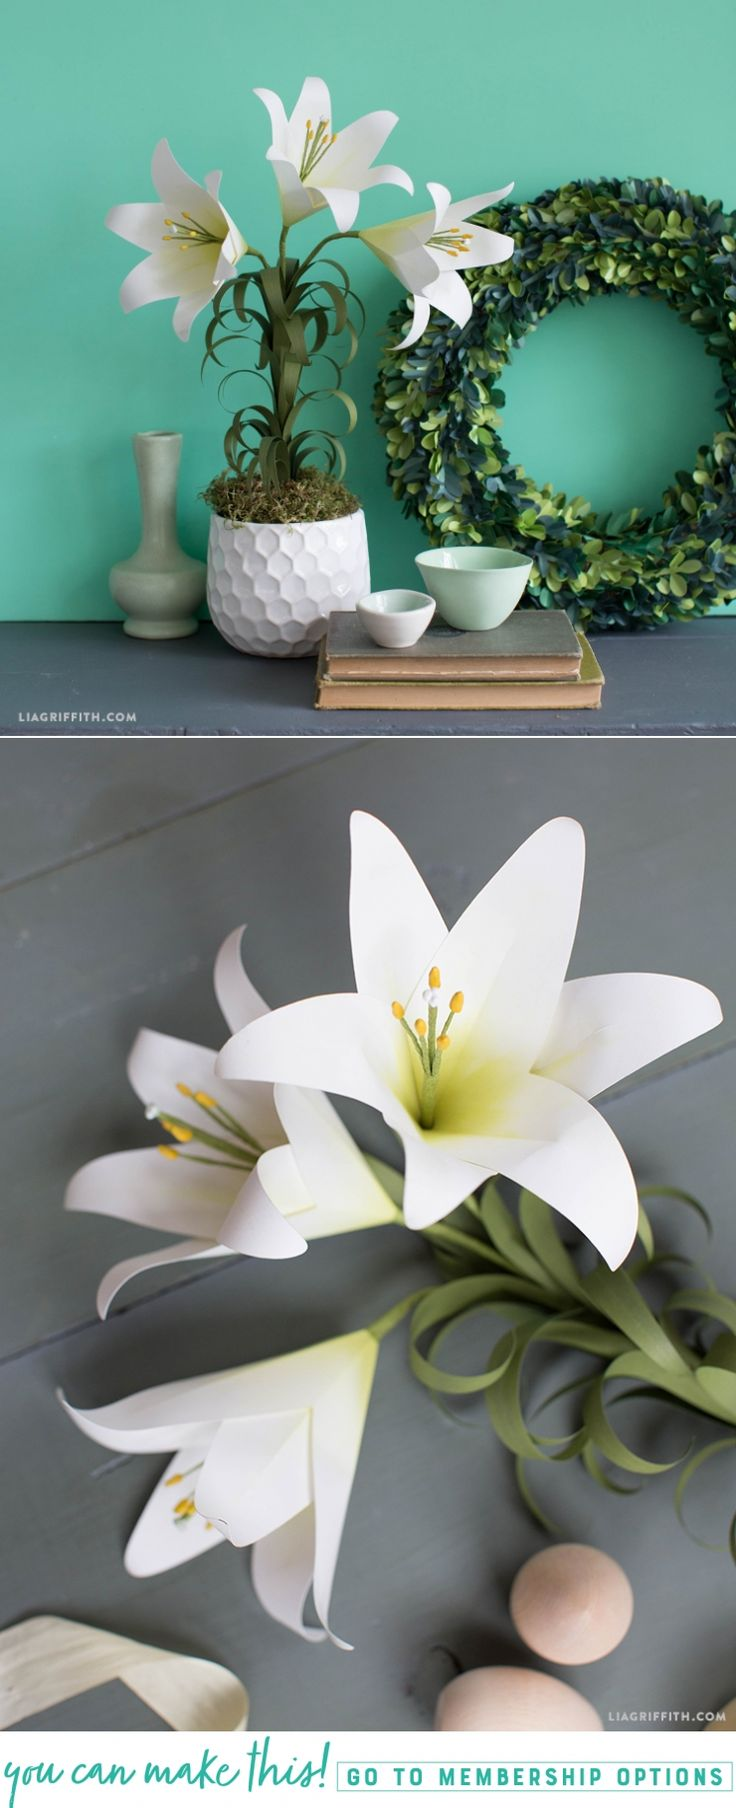 Lovely Lilies ✨This lovely Easter lily flower is an absolute show stopper and jaw dropper. We love how it has such realistic dimension and depth to its petals and leaves. You can download the PDF and SVG cut files for FREE here https://liagriffith.com/potted-easter-lily-flower/ @paperpaperscom  * * * #ad #paper #easter #eastersunday #lily #lilies #papercut #paperlove #paperflower #paperflowers #diy #diyidea #diydecor #diyhome #diyideas #diycraft #diycrafts #diyinspiration #spring #home…